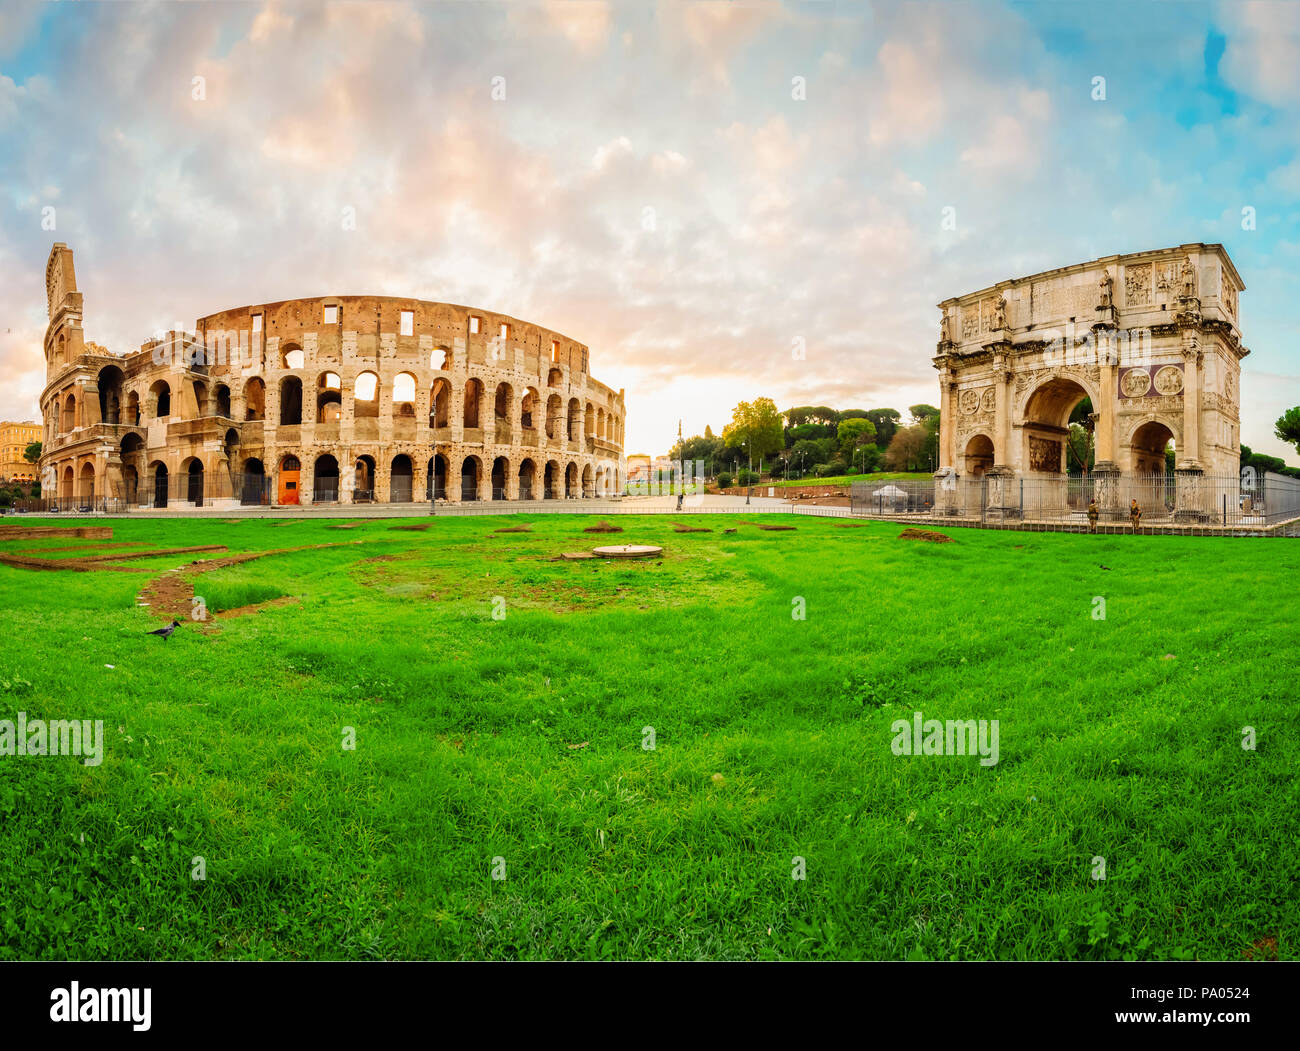 ruins of antique Colosseum and Arch of Constantine in sunise lights, Rome Italy, toned - Stock Image